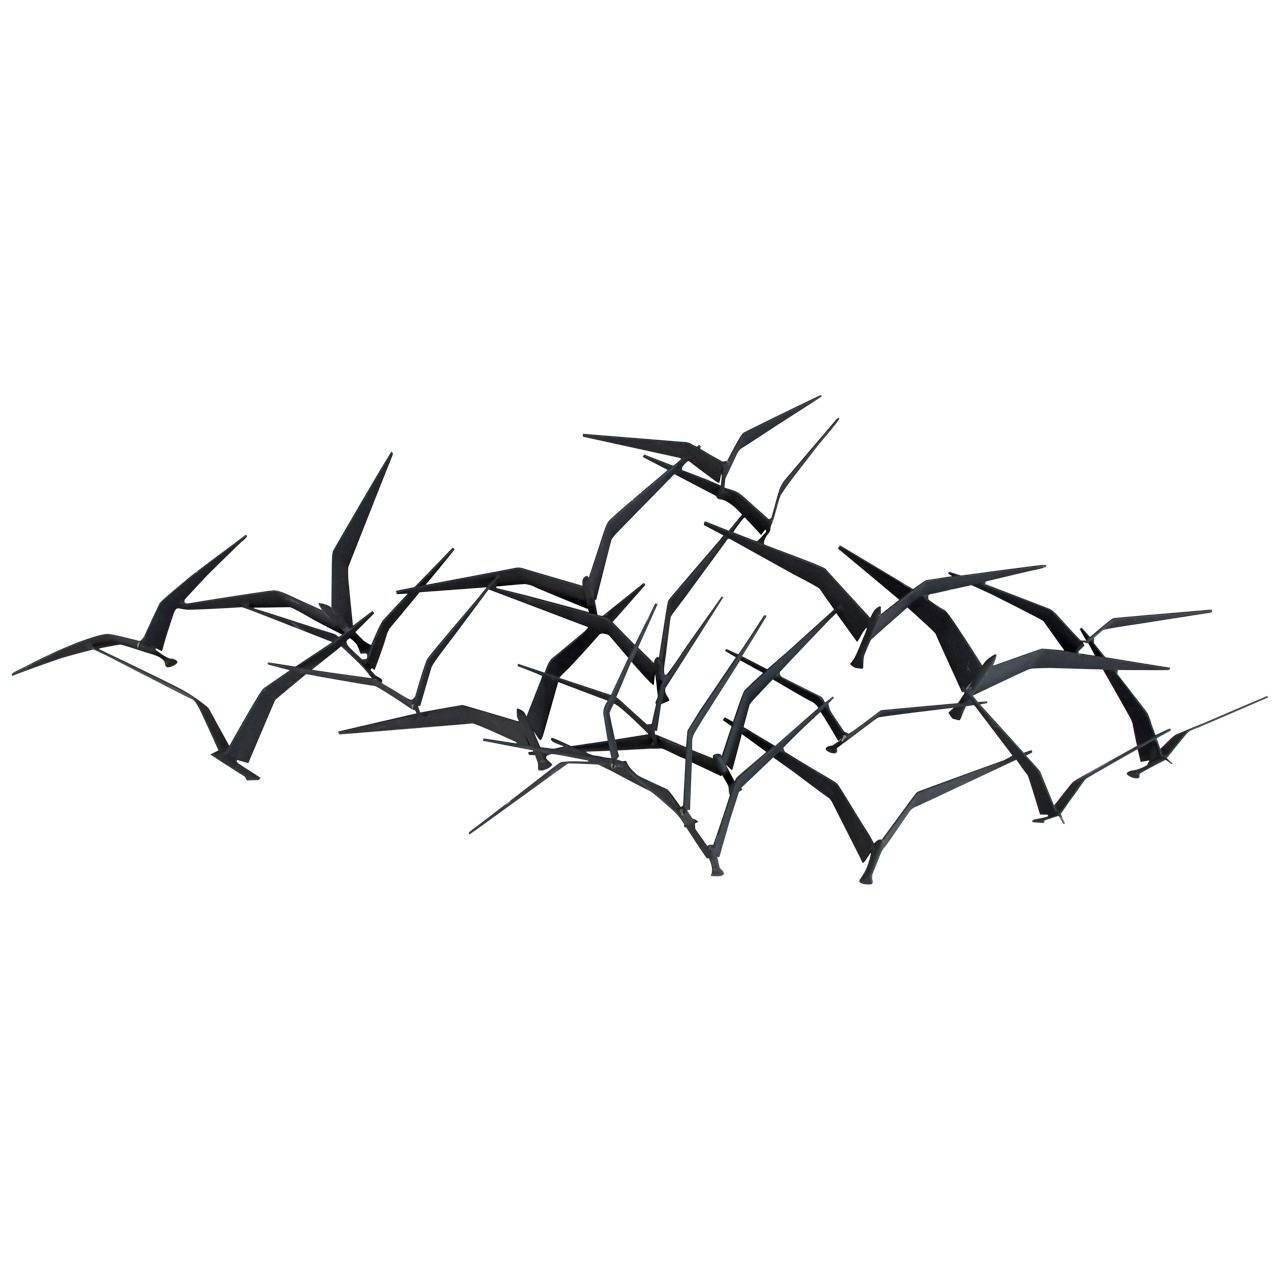 Cozy Mirror Wall Art Flying Birds Cheap Black Bird Tree Wall Art With Most Current Flock Of Birds Metal Wall Art (View 6 of 30)